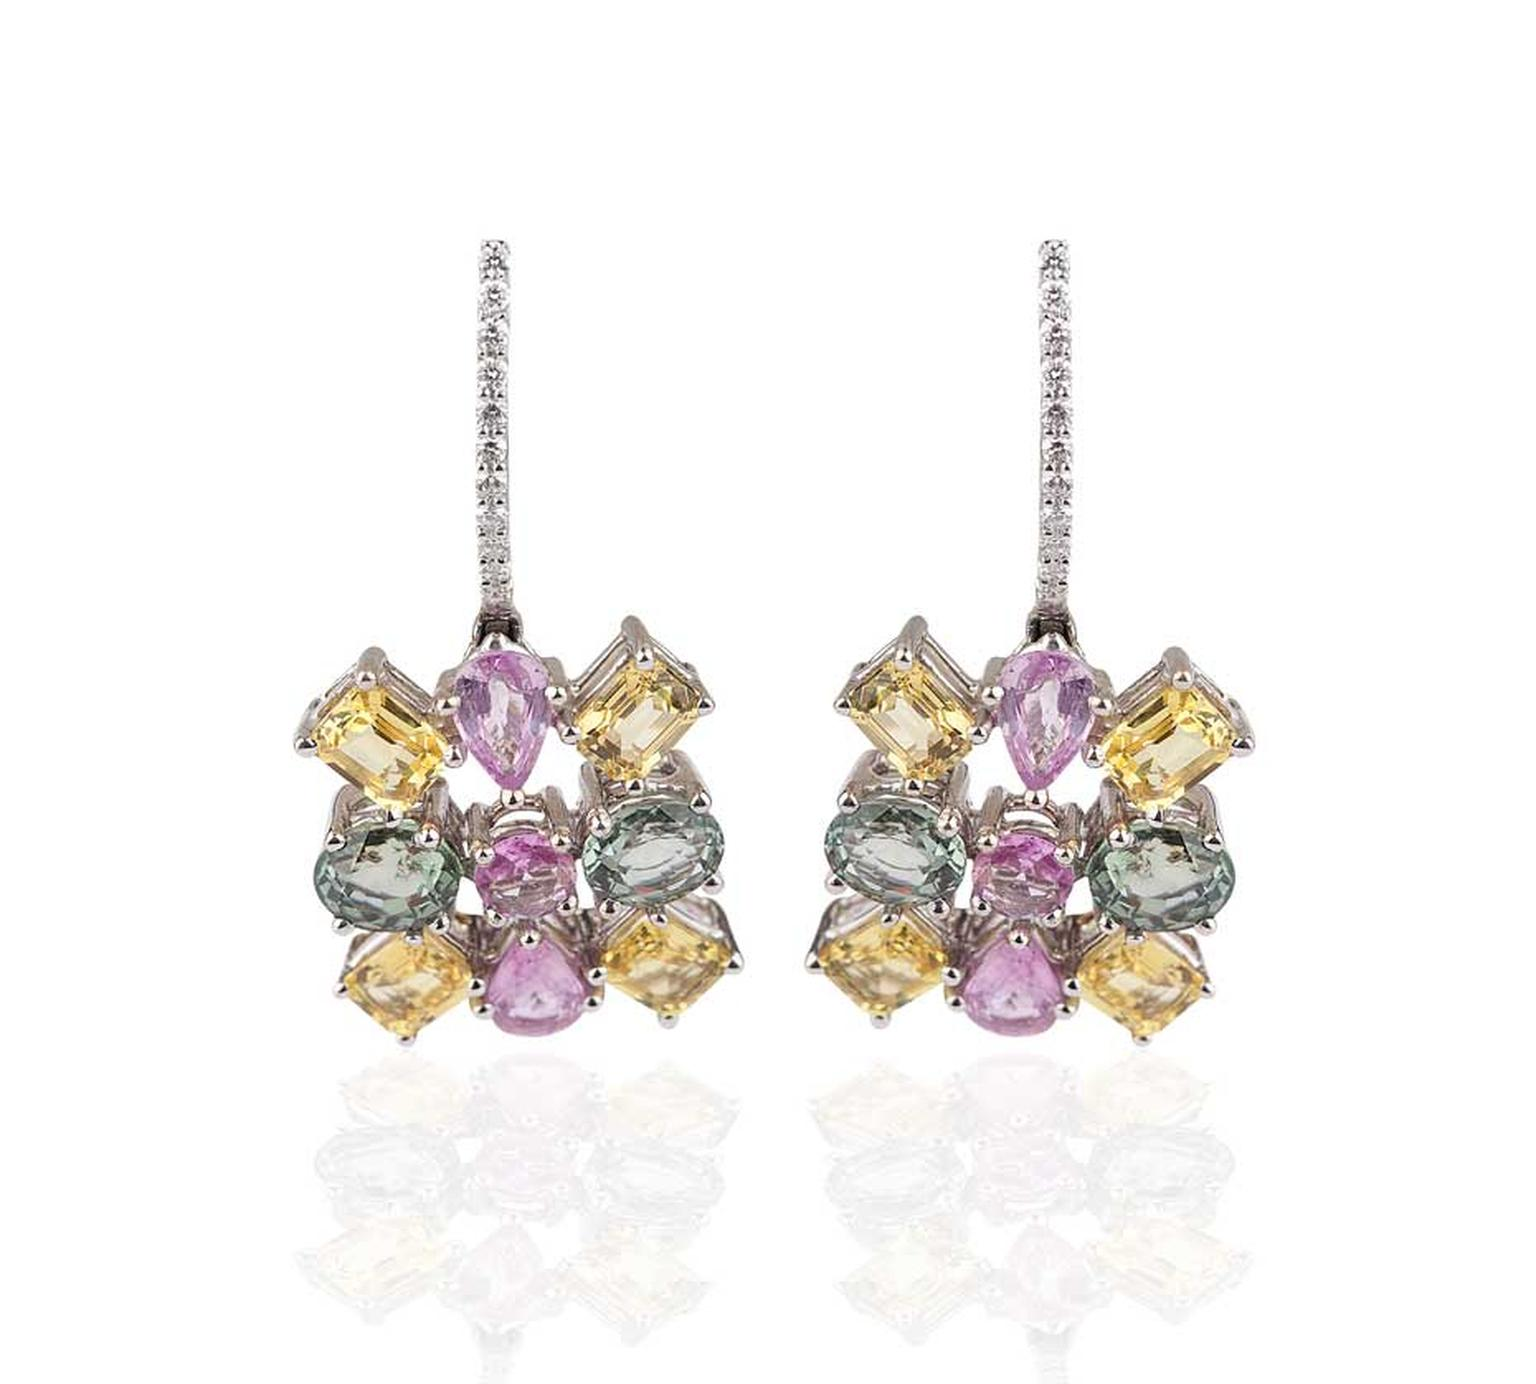 Mirari white gold earrings with multi-coloured sapphires